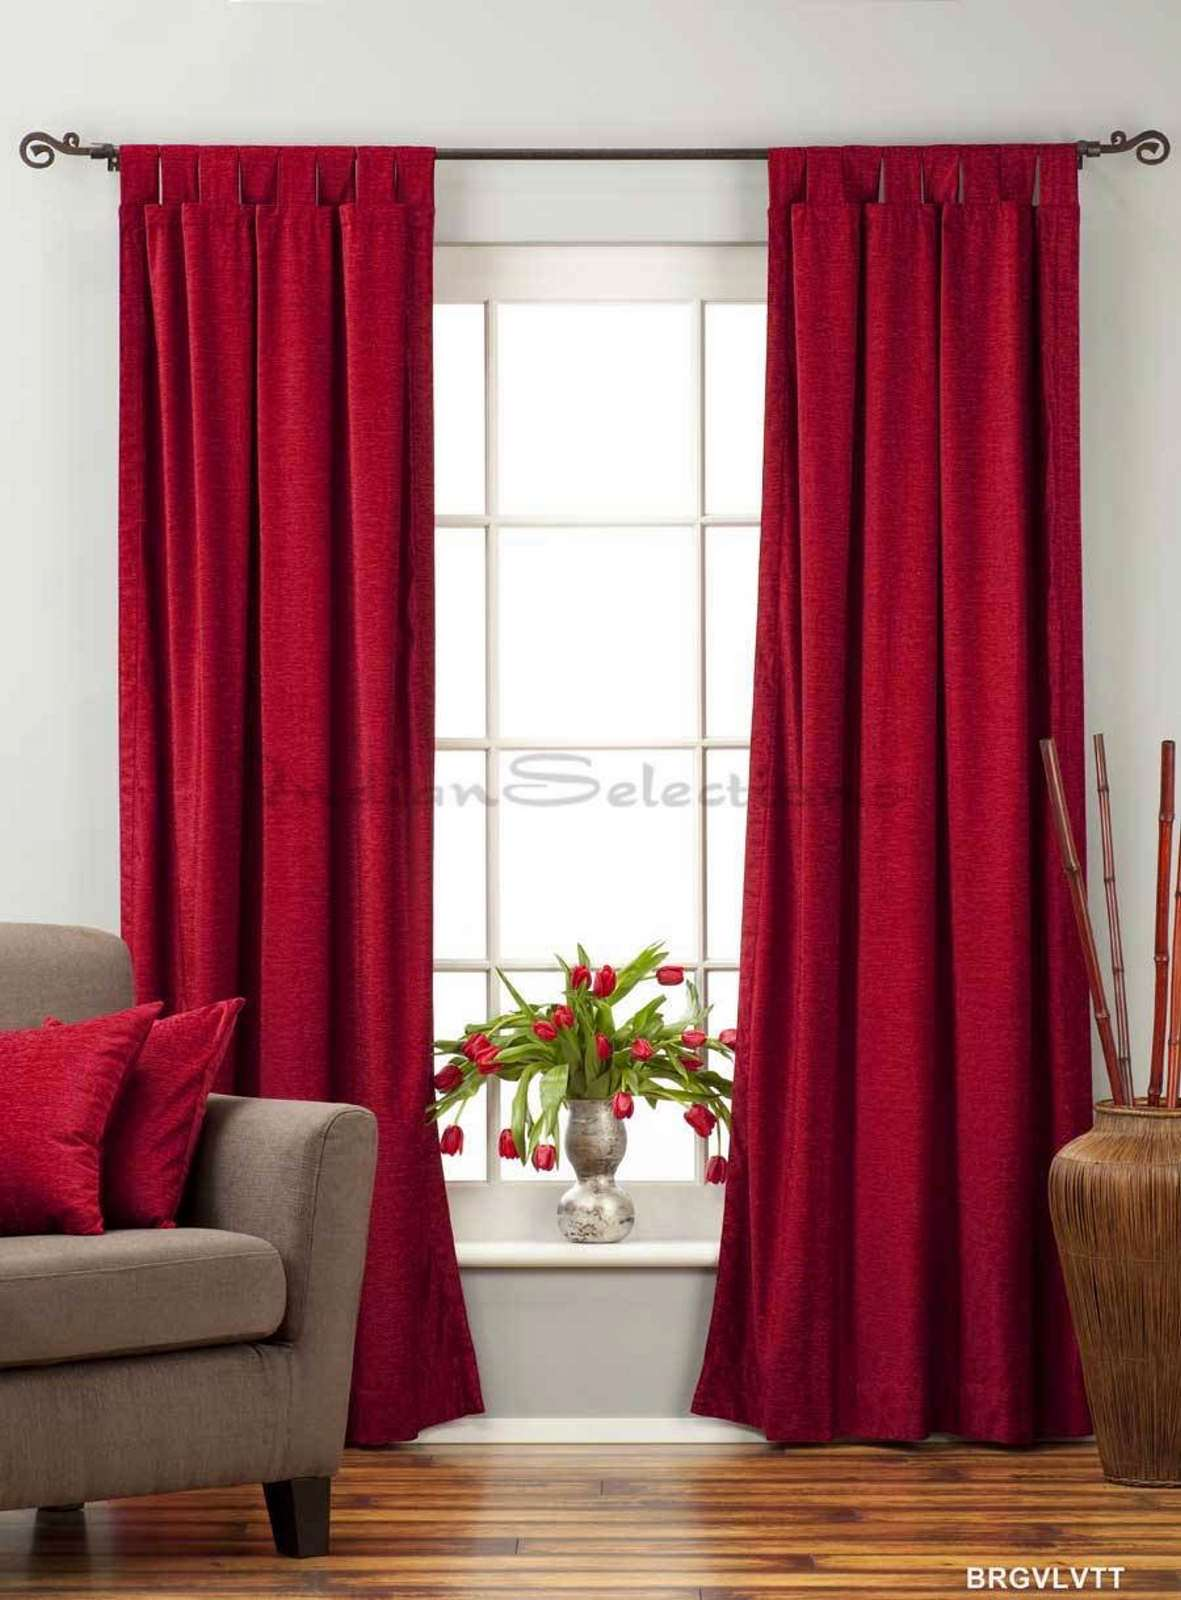 Lined-Burgundy Tab Top  Velvet Curtain  Drape  Panel   - 43W x 84L - Piece